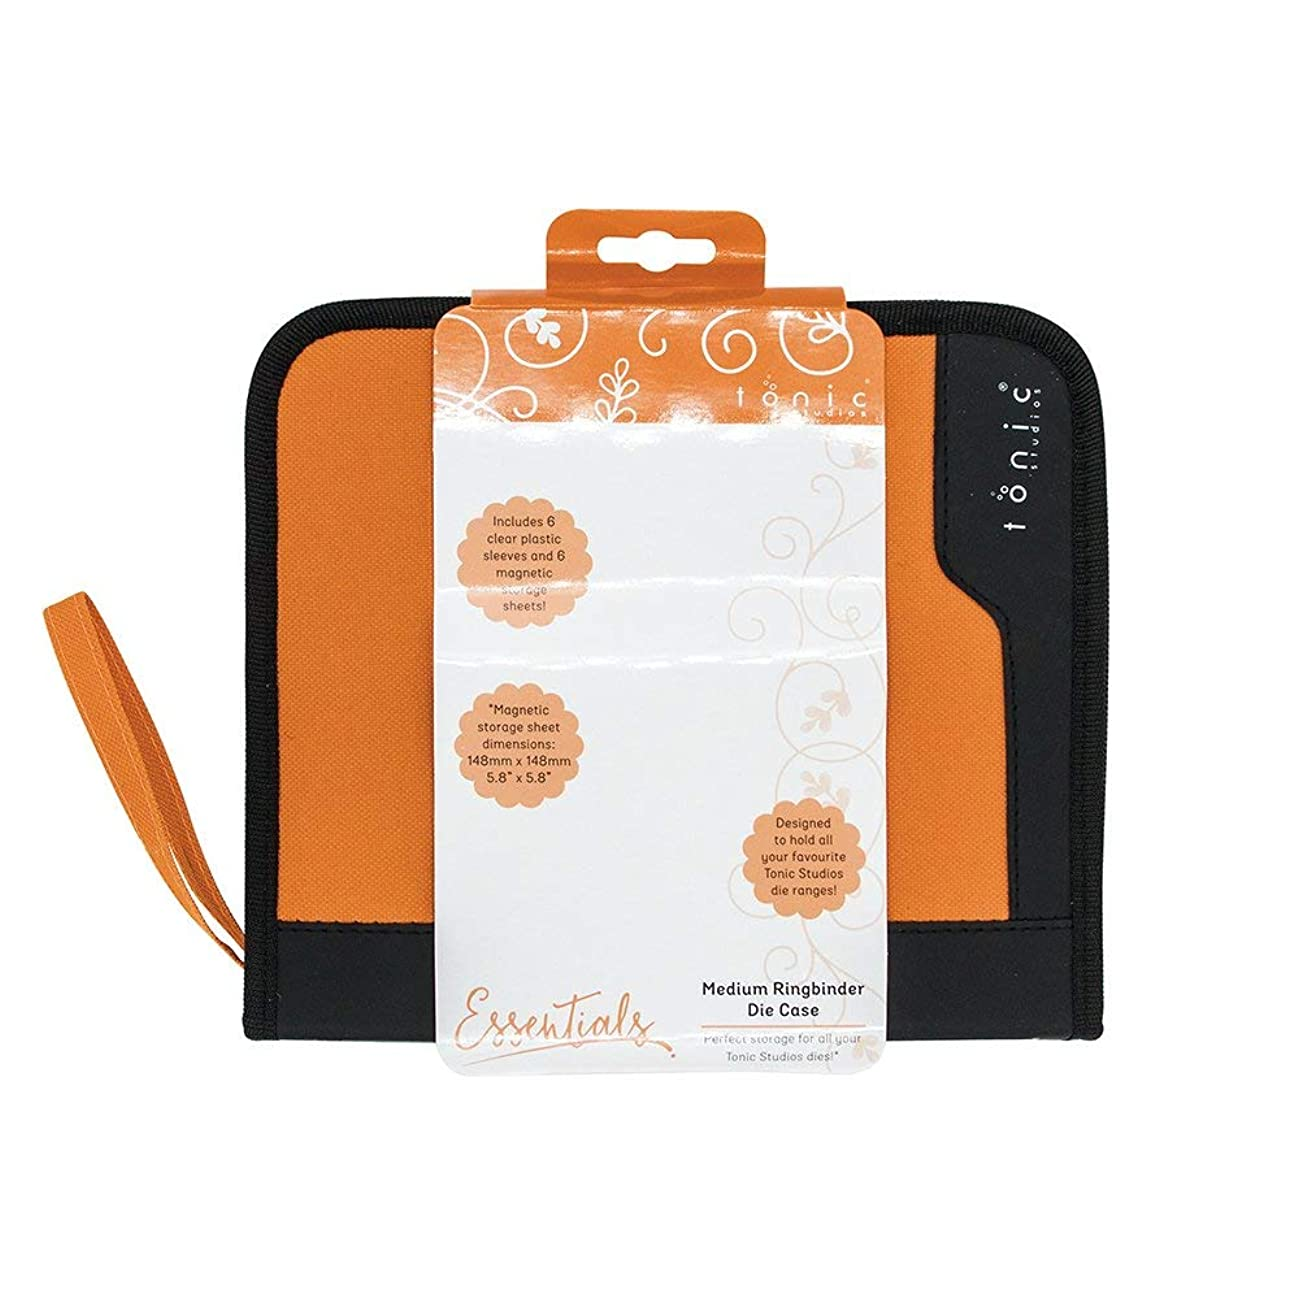 TONIC STUDIOS 344E 6 Piece Ringbinder Clear Inserts and Magnetic Sheets, Medium, Orange/Black